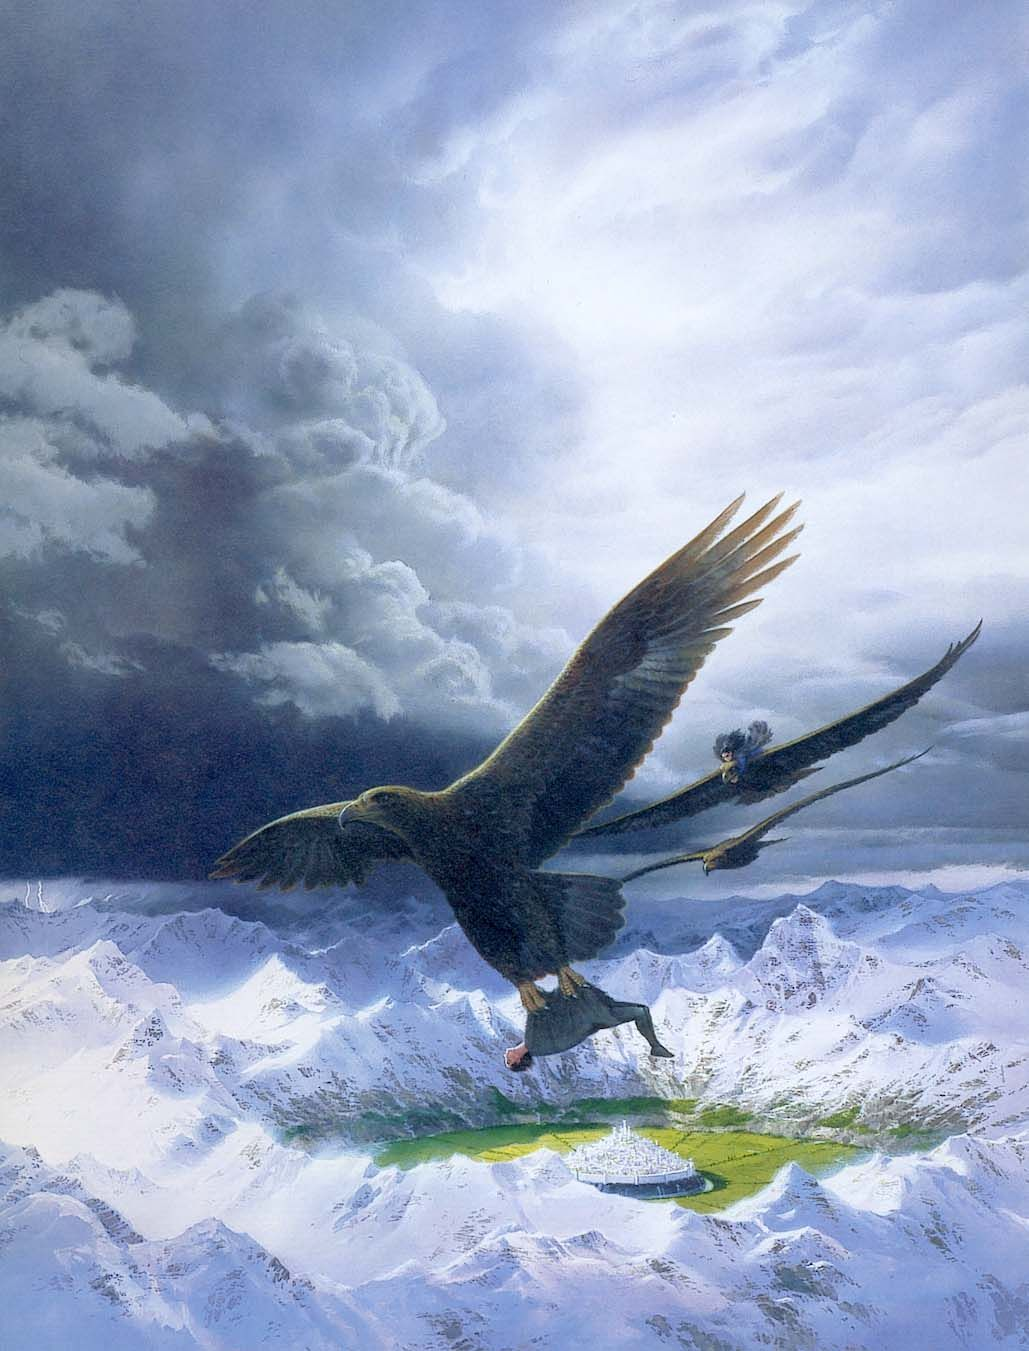 "Eagles over Gondolin by Ted Nasmith. ""But Thorondor took his way far above the earth, seeking the high roads of heaven, where the sun daylong shines unveiled and the moon walks amid the cloudless stars. Thus they passed swiftly over Dor-nu-Fauglith, and over Taur-nu-Fuin, and came above the hidden valley of Tumladen. No cloud nor mist lay there, and looking down Luthien saw far below, as a white light starting from a green jewel, the radiance of Gondolin the fair where Turgon dwelt."""